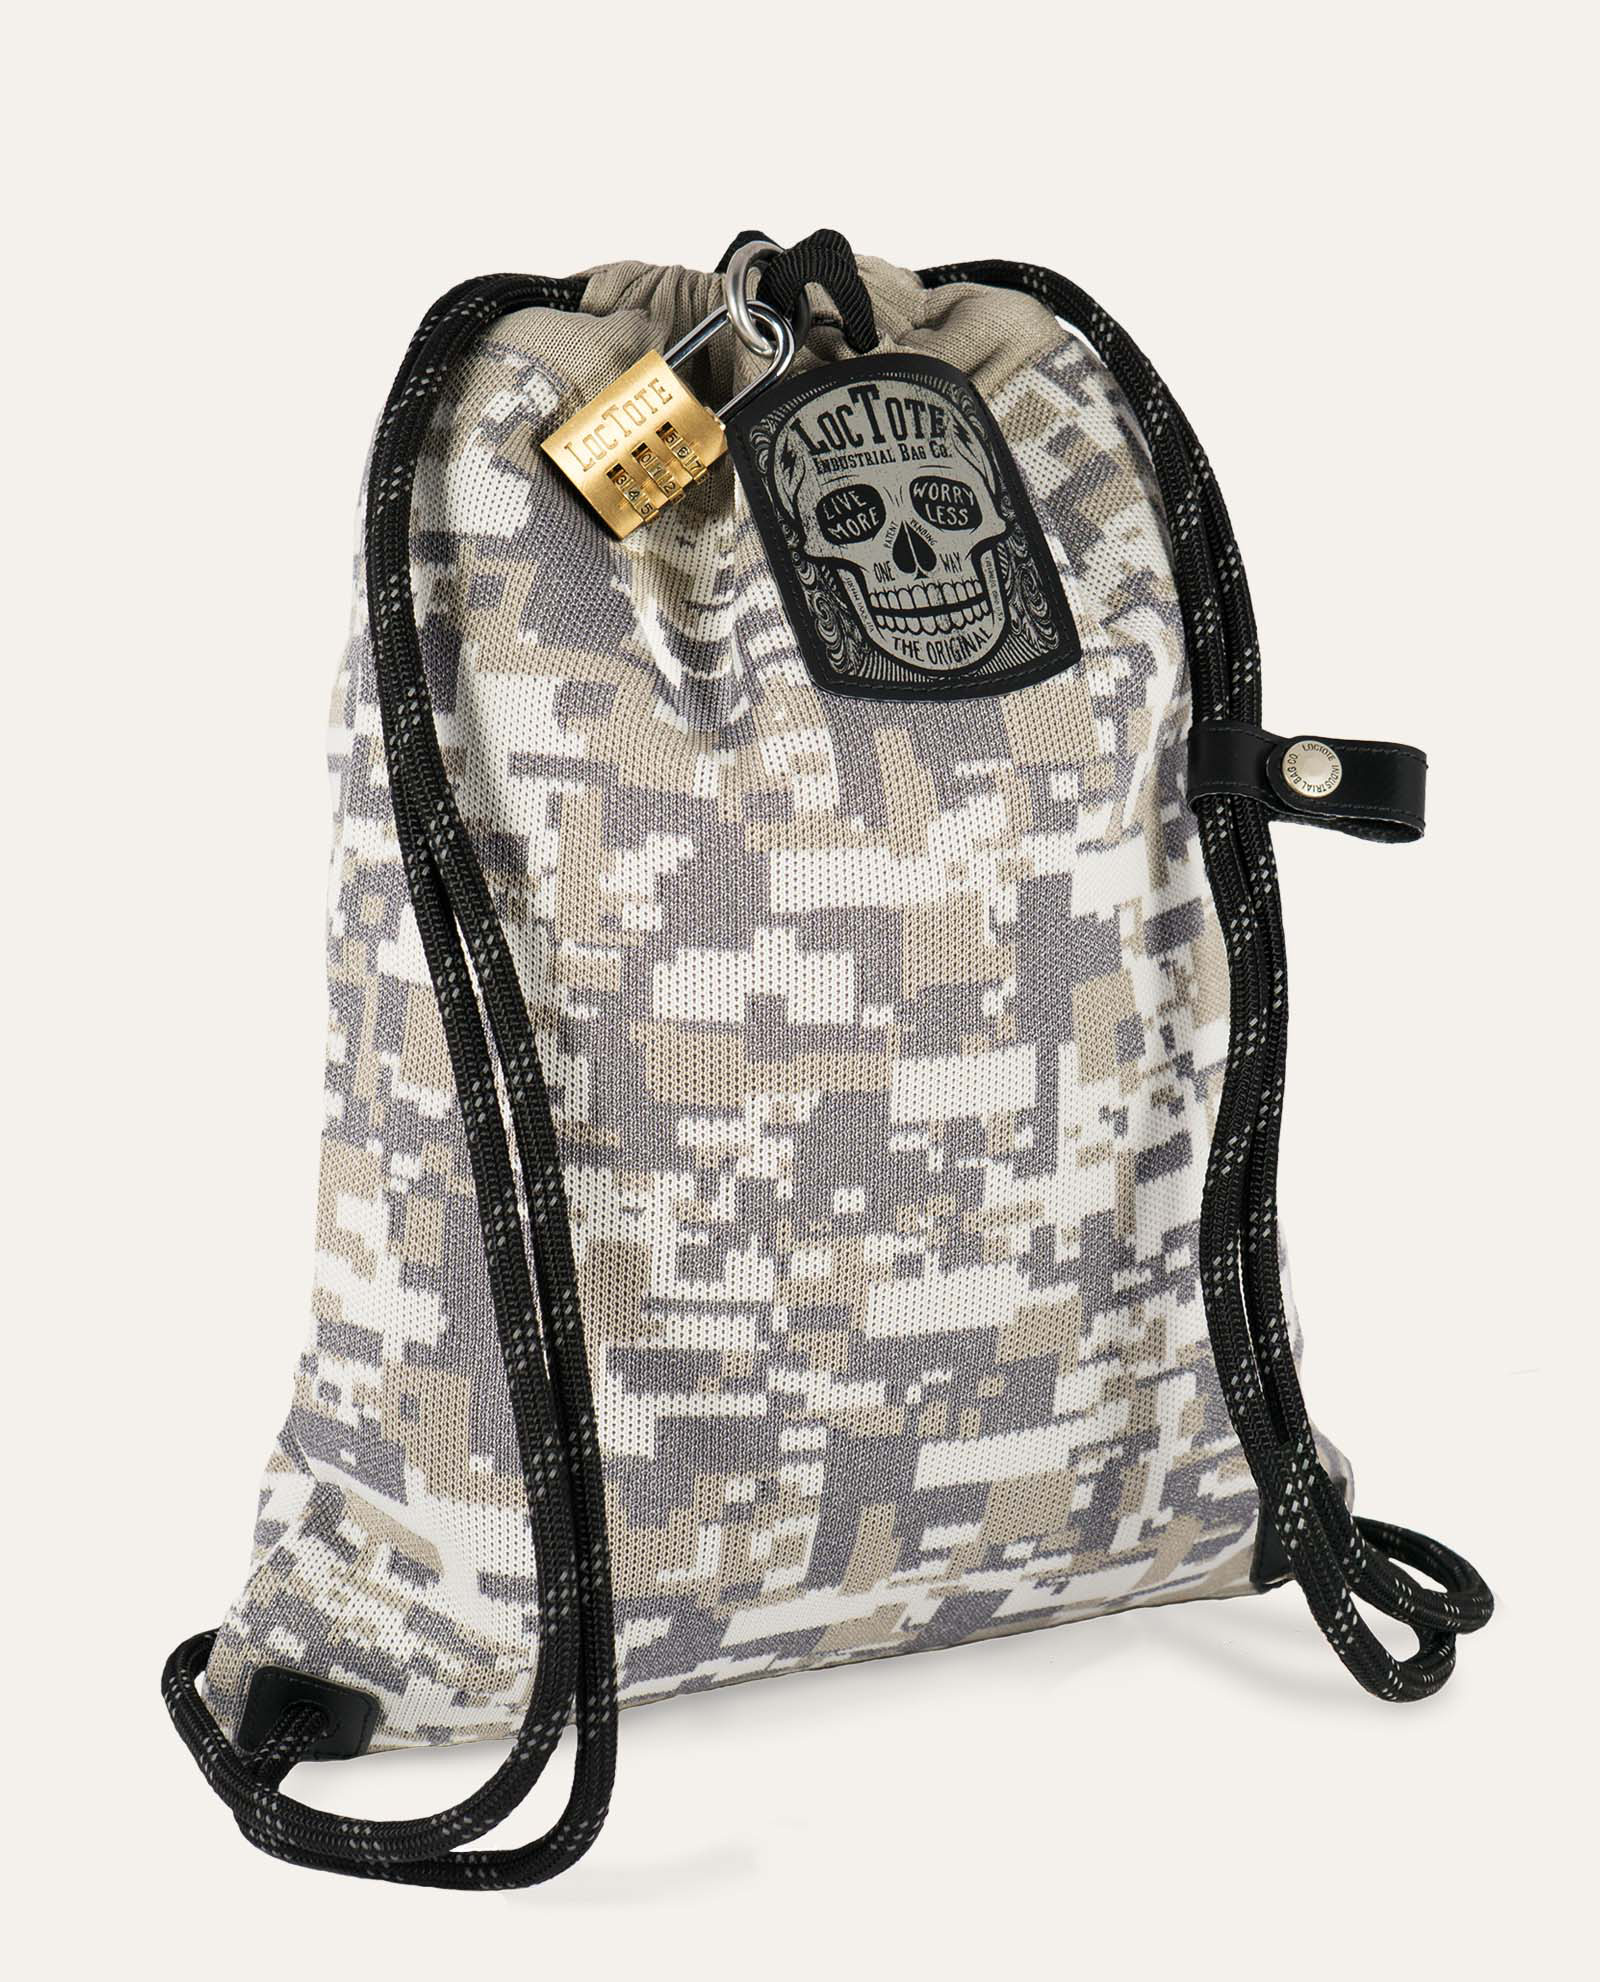 The Flak Sack™ Enhanced with Honeywell Spectra ®